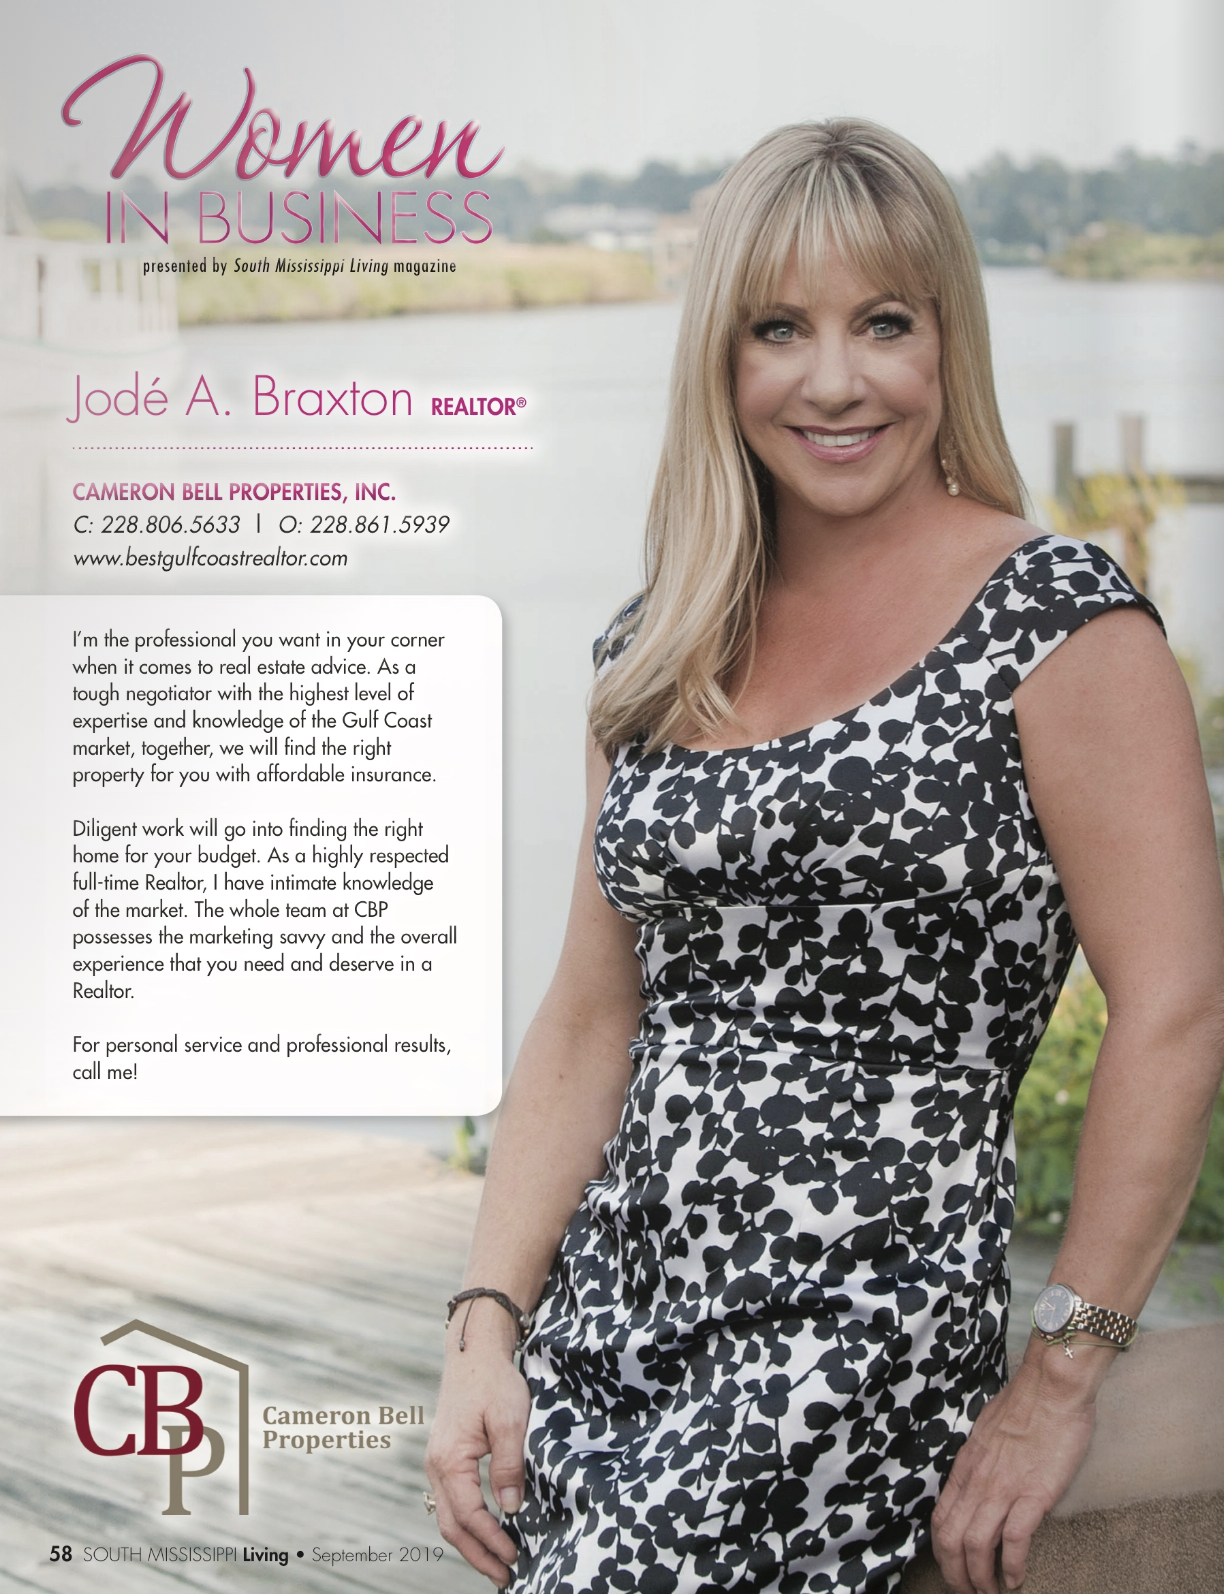 Jode' Braxton, South Mississippi Living, Women in Business Sep 2019